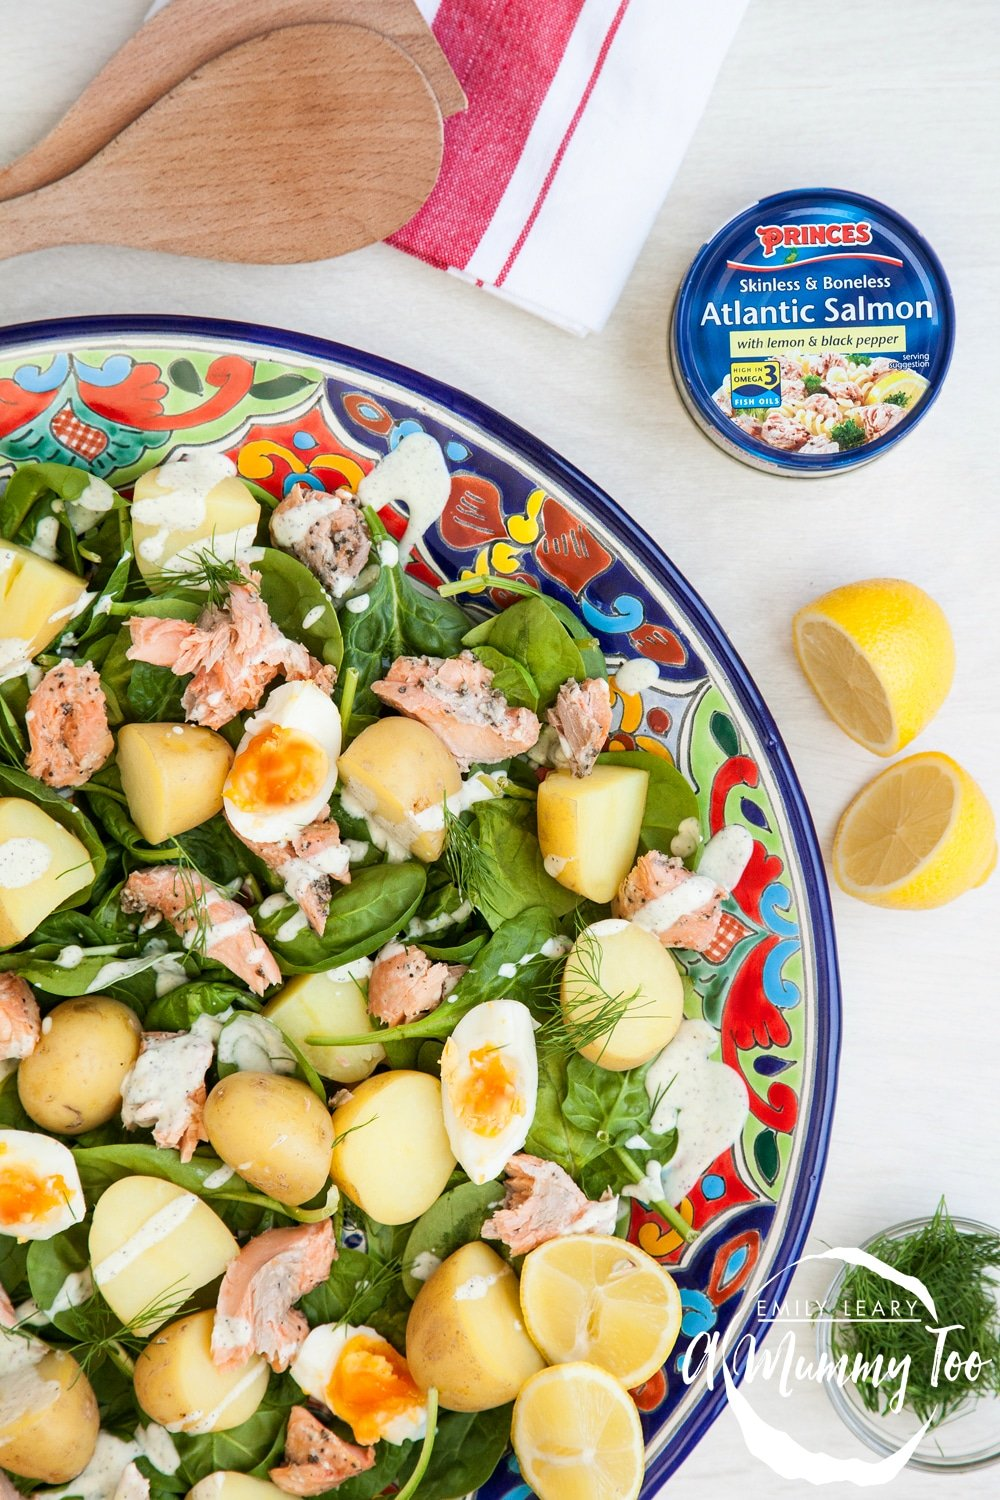 This lemony salmon and new potato salad is a delicious, healthy meal for the whole family